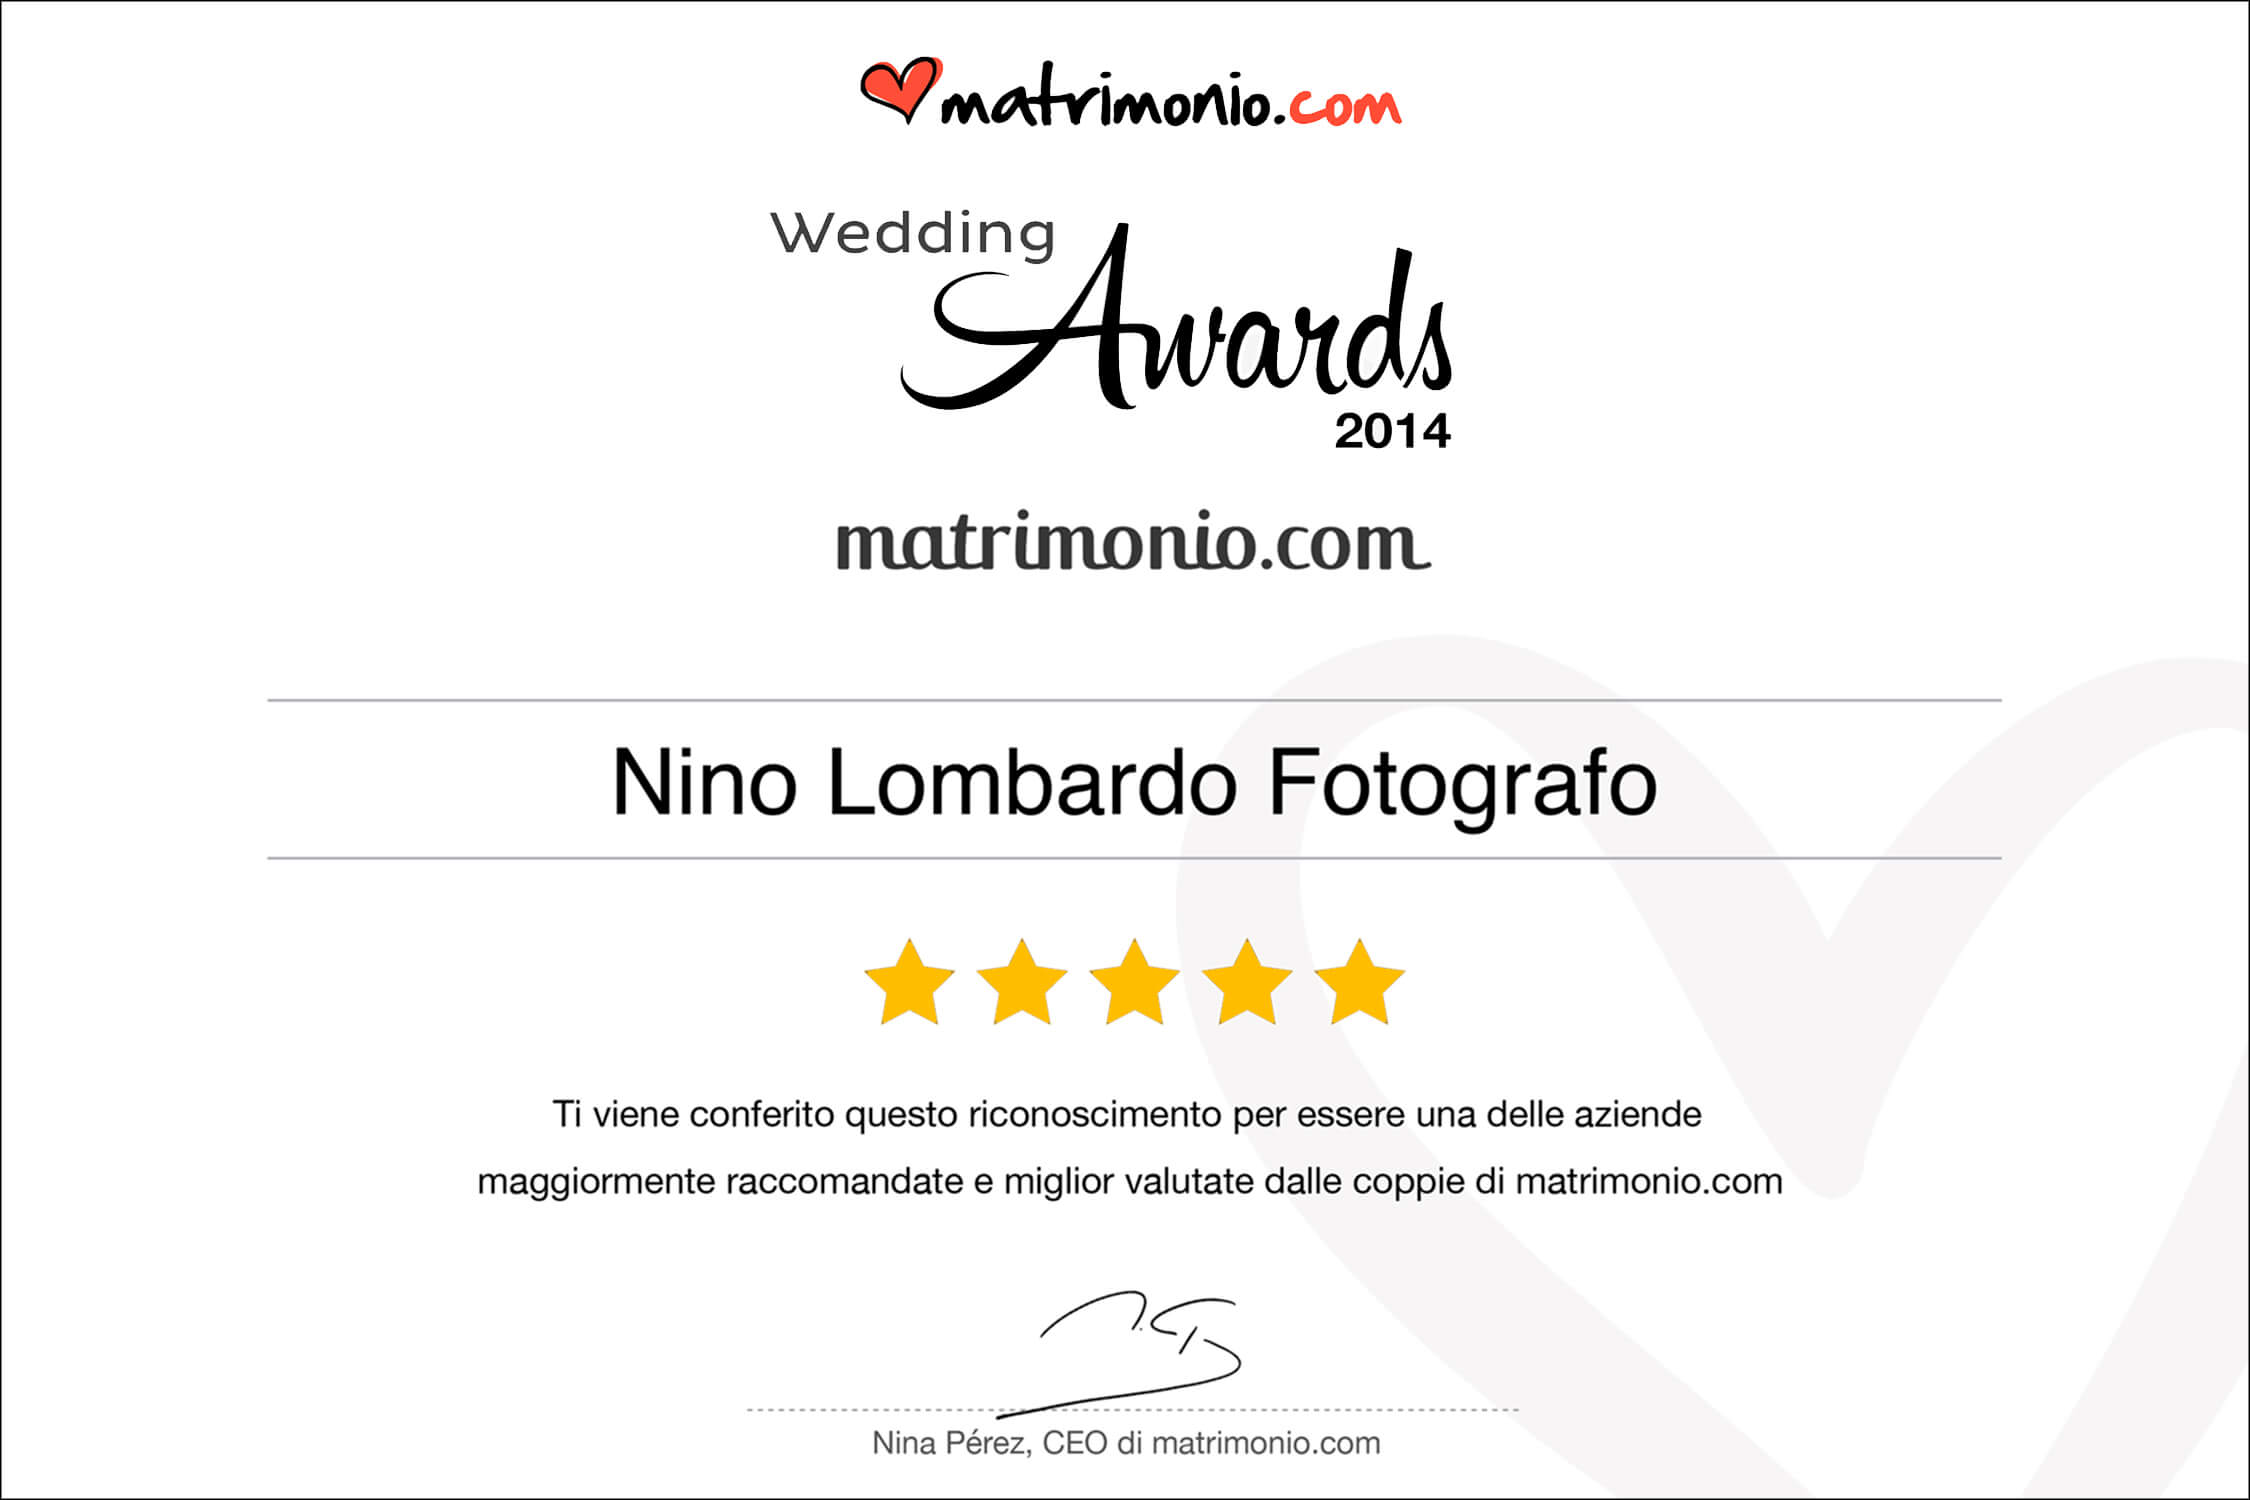 2014 Best Testimonials Wedding Award matrimonio.com Italy Photographer